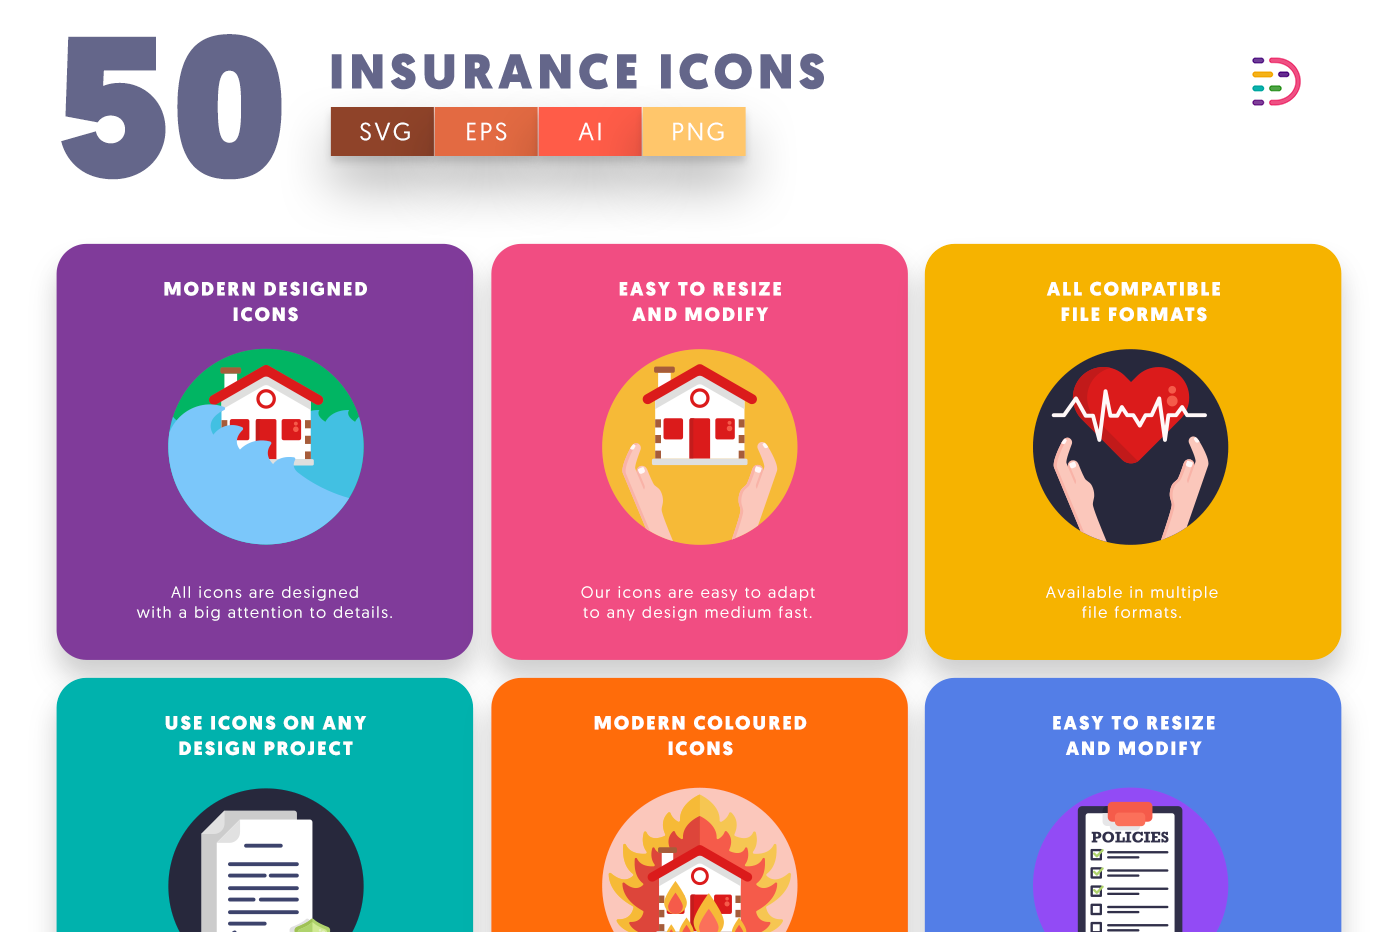 50 Insurance Icons with colored backgrounds